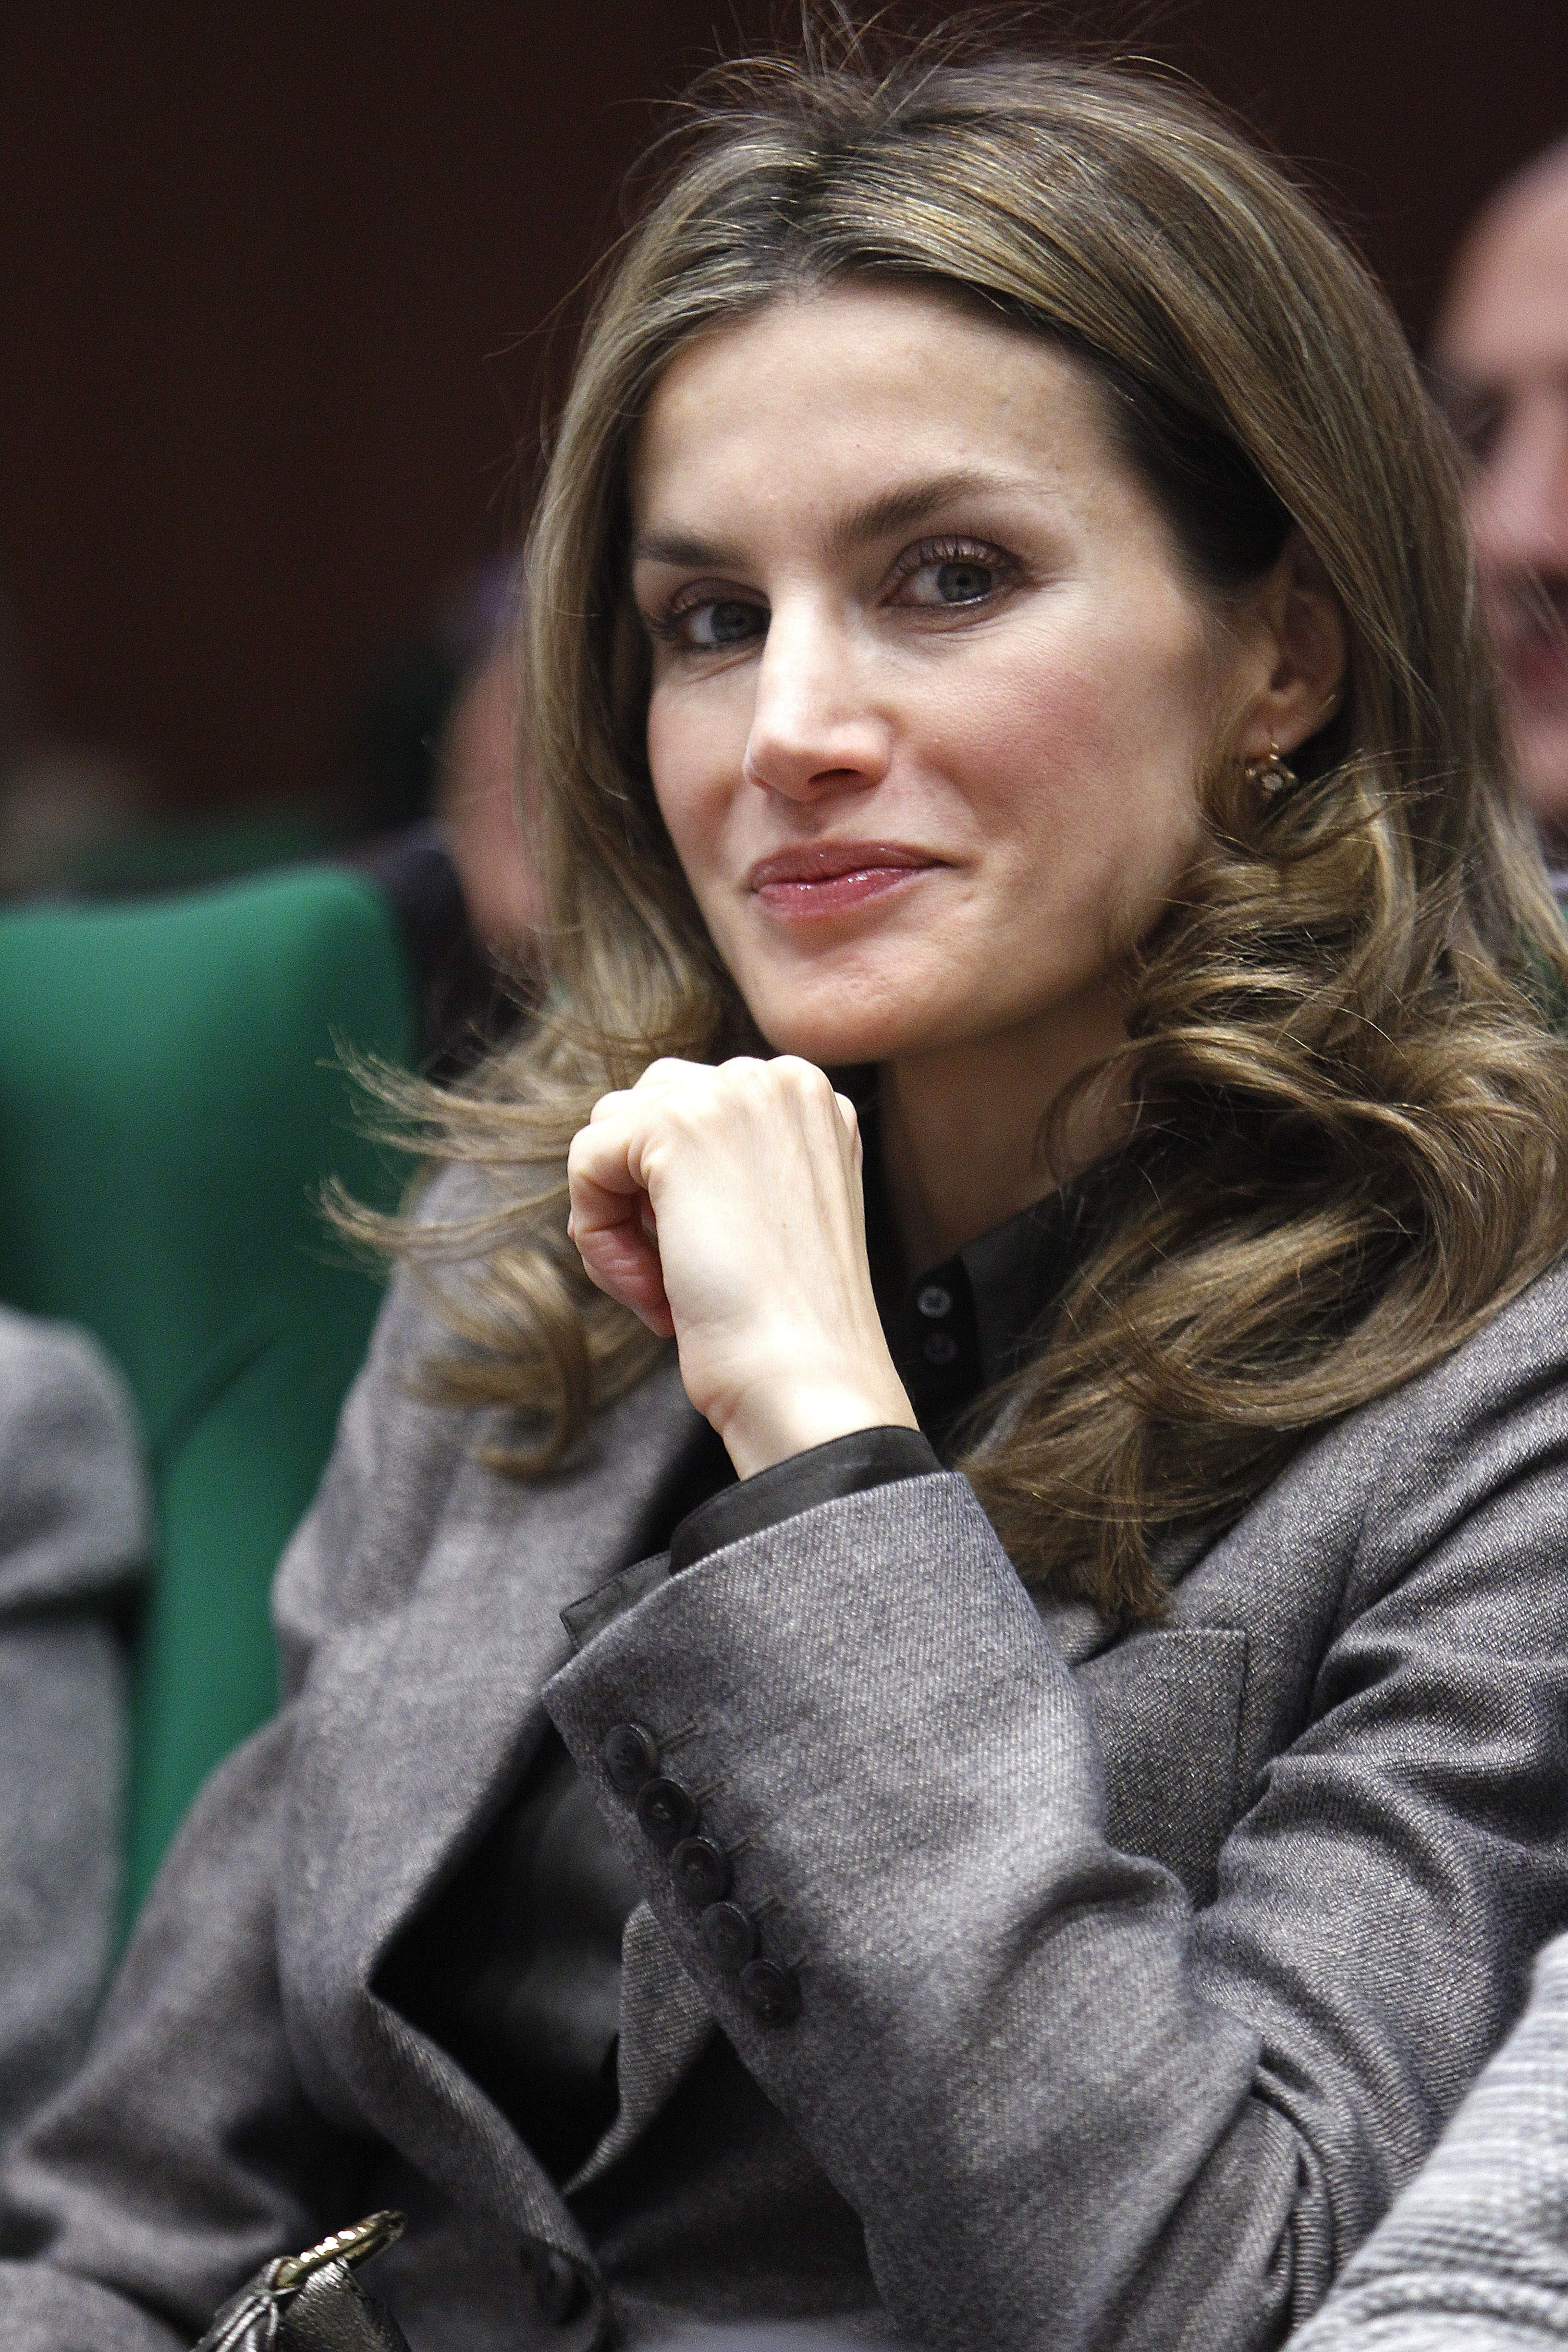 Princess Letizia attends the conference 'The Imporance of Cancer Research' organized by the Spanish Association Against Cancer (AECC) November 13, 2012 in Madrid.